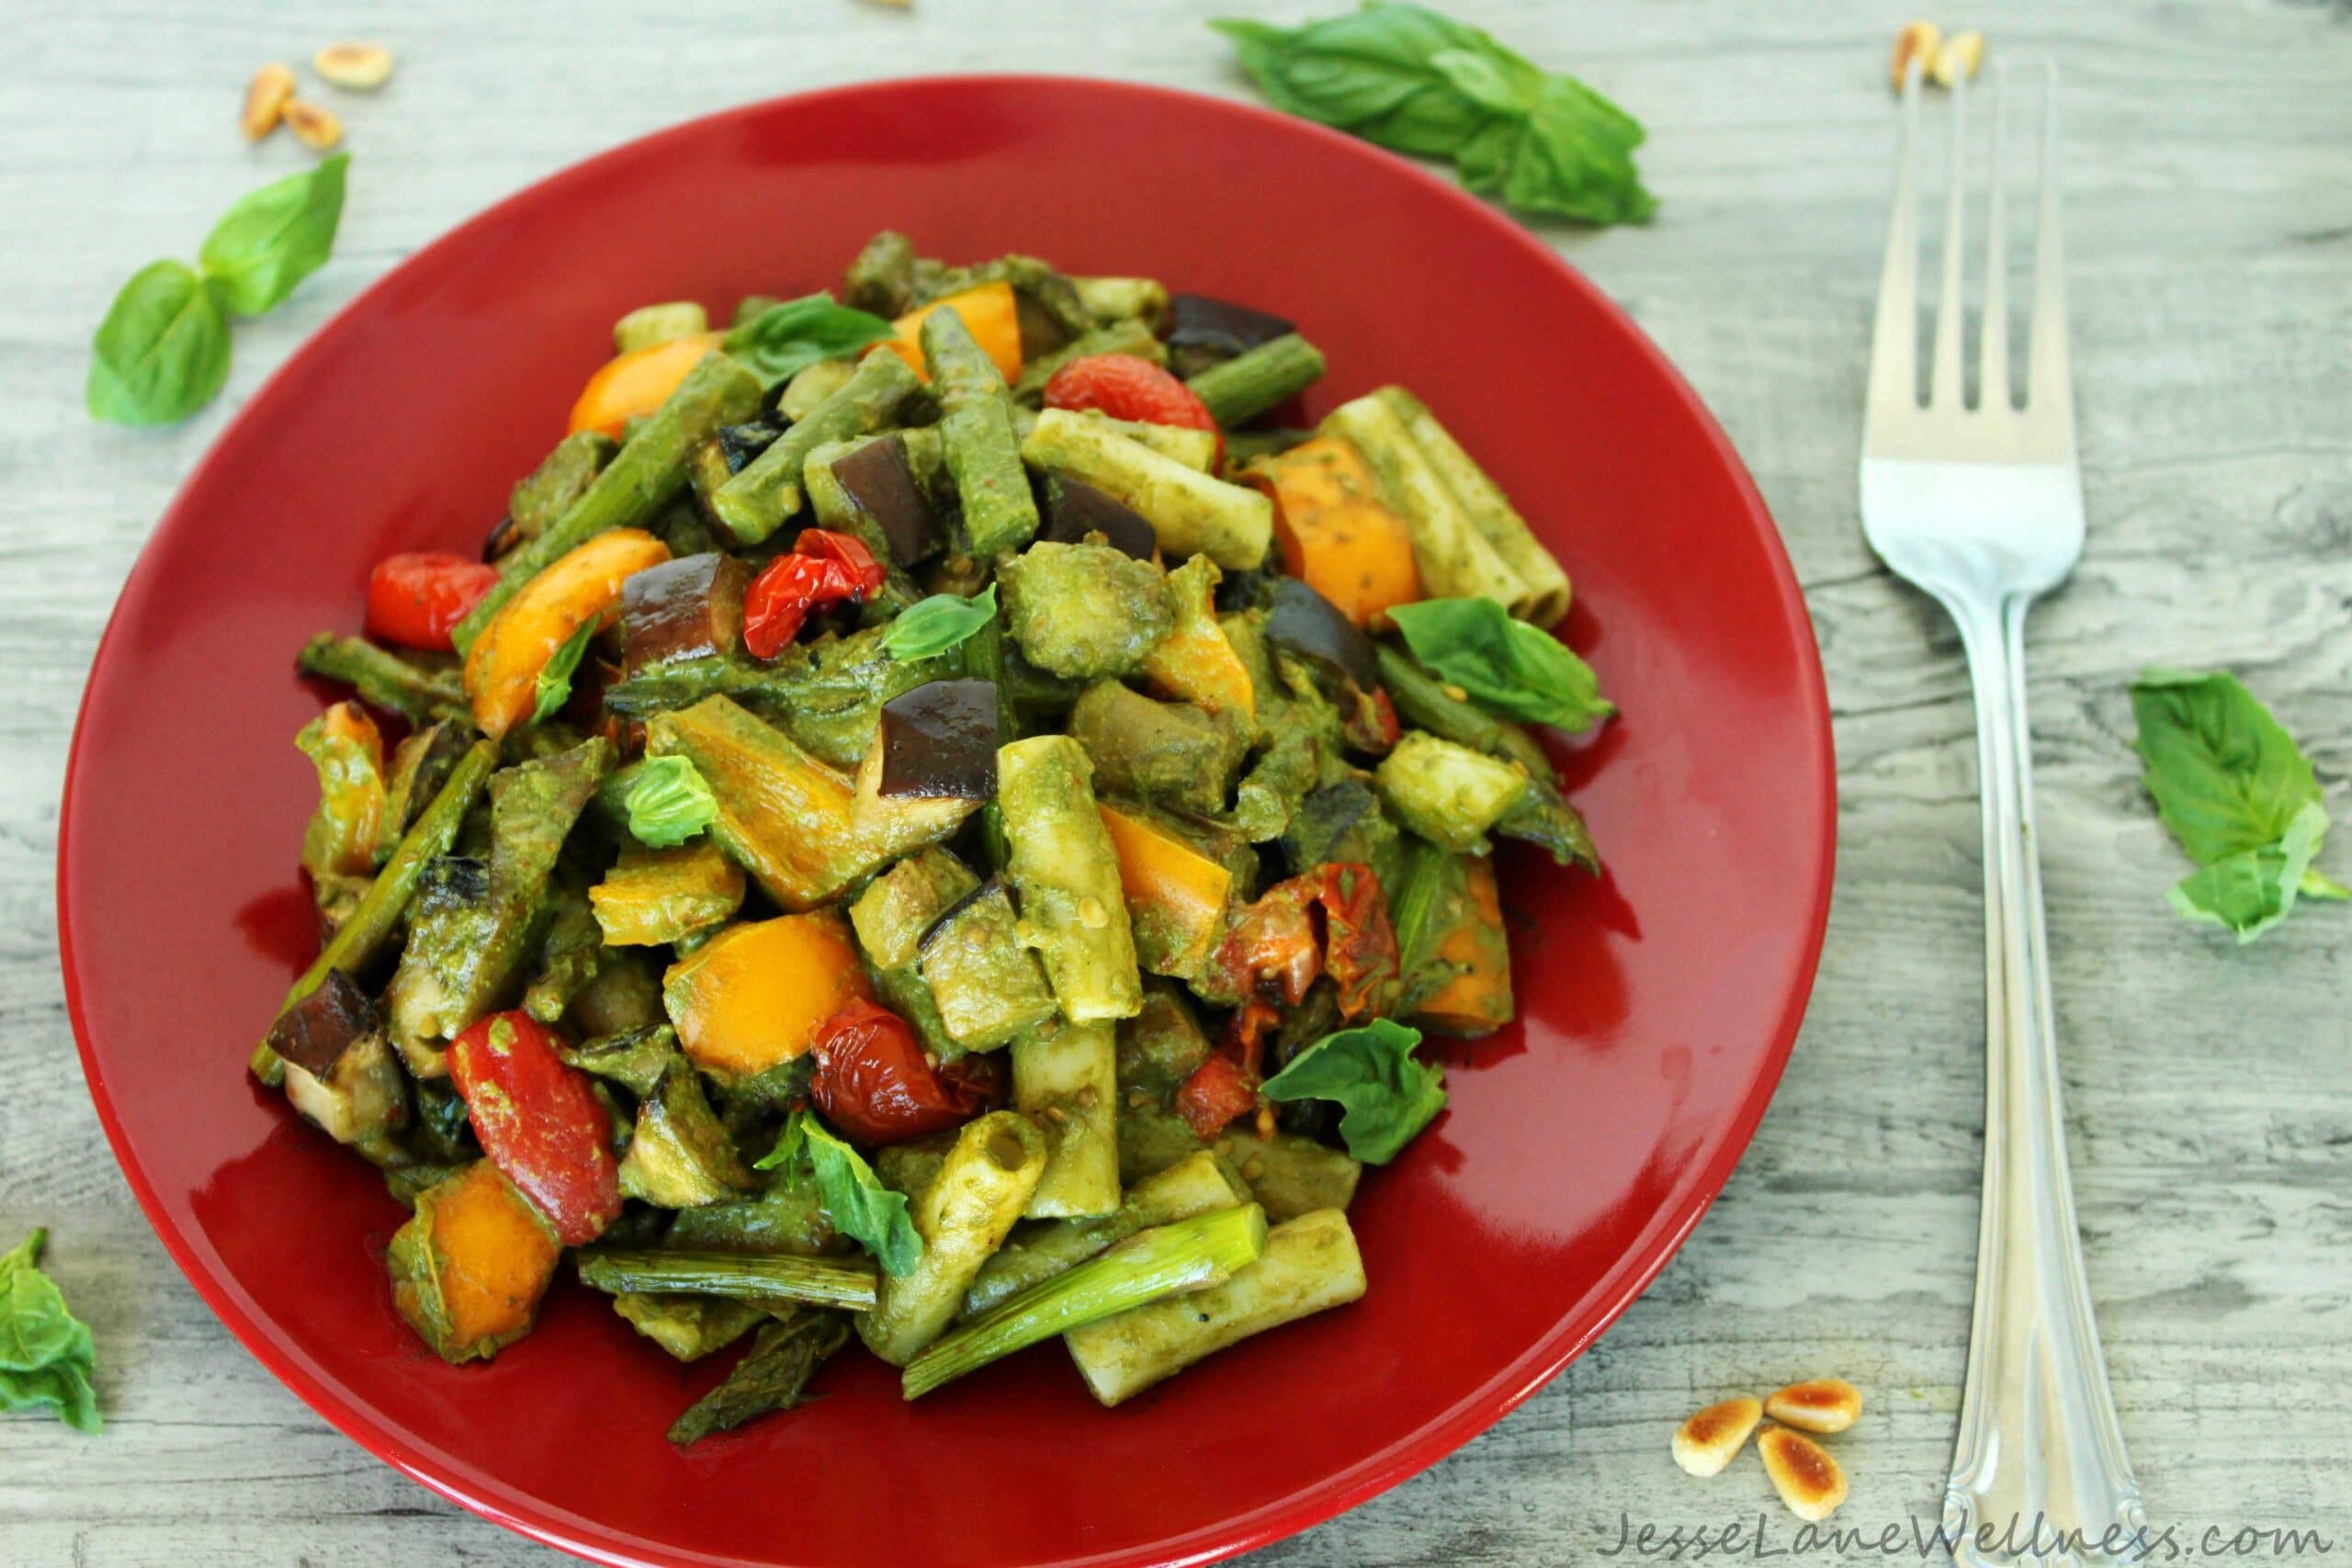 Pesto Primavera with Roasted Veggies @JesseLWellness #glutenfree #vegan #pesto